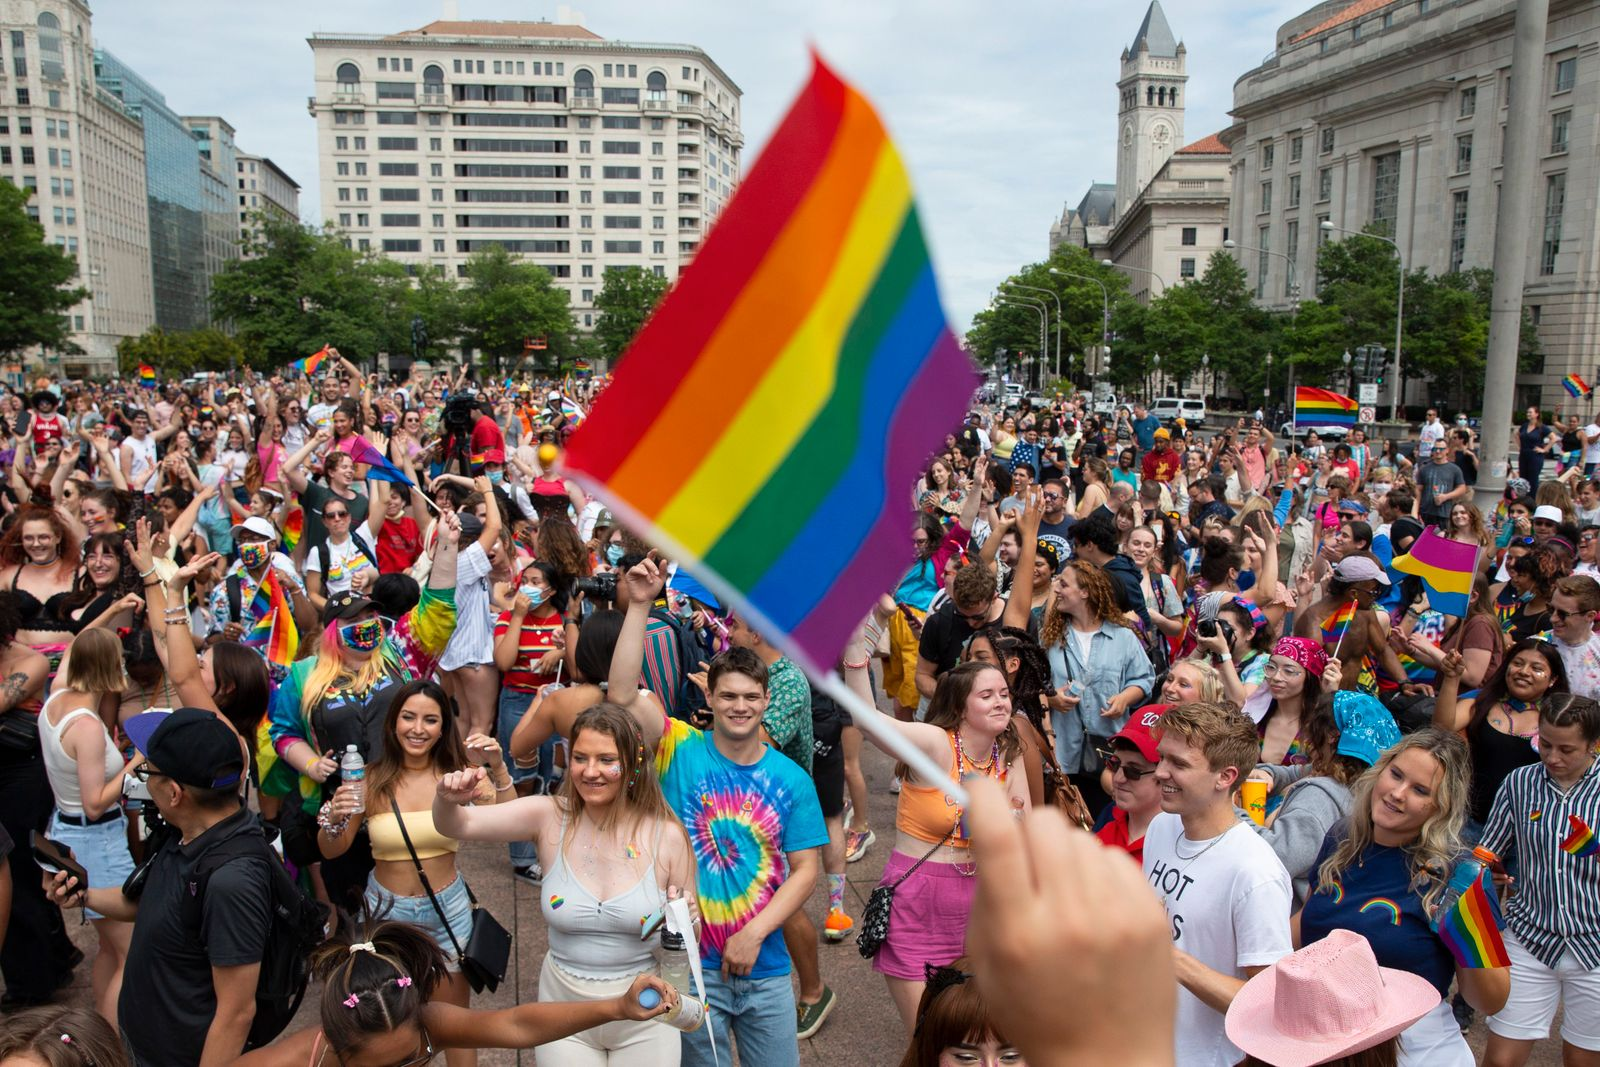 Capital Pride parade and rally to celebrate the LGBTQ+ community in Washington, DC